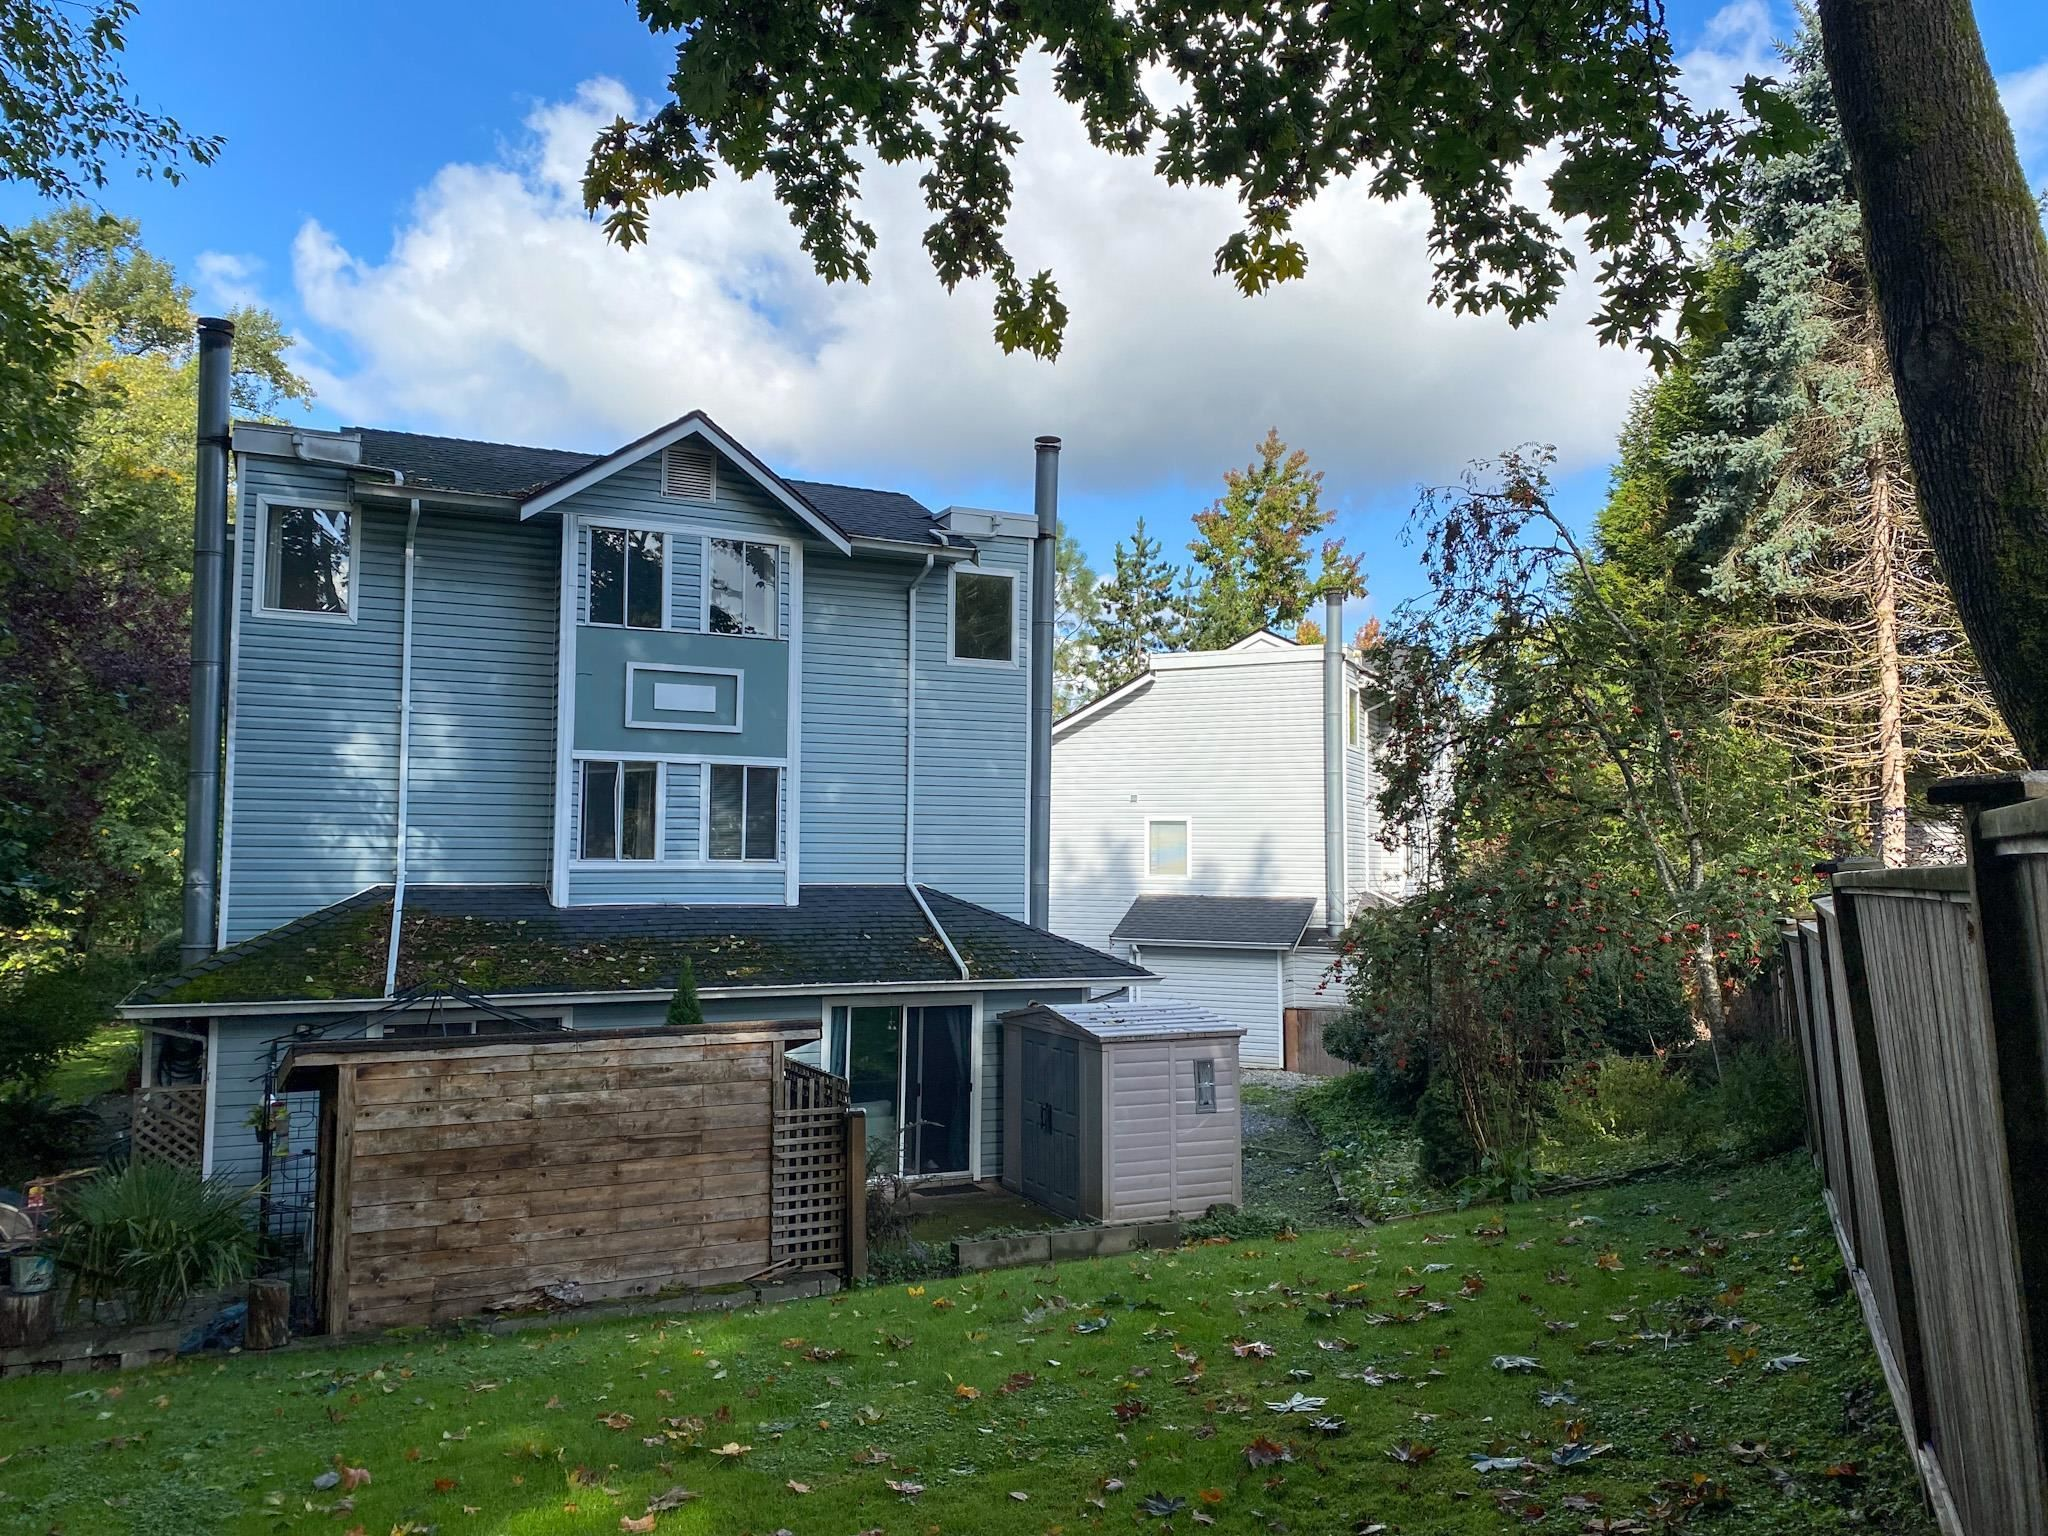 Main Photo: 45 22412 124 Avenue in Maple Ridge: East Central Townhouse for sale : MLS®# R2622683